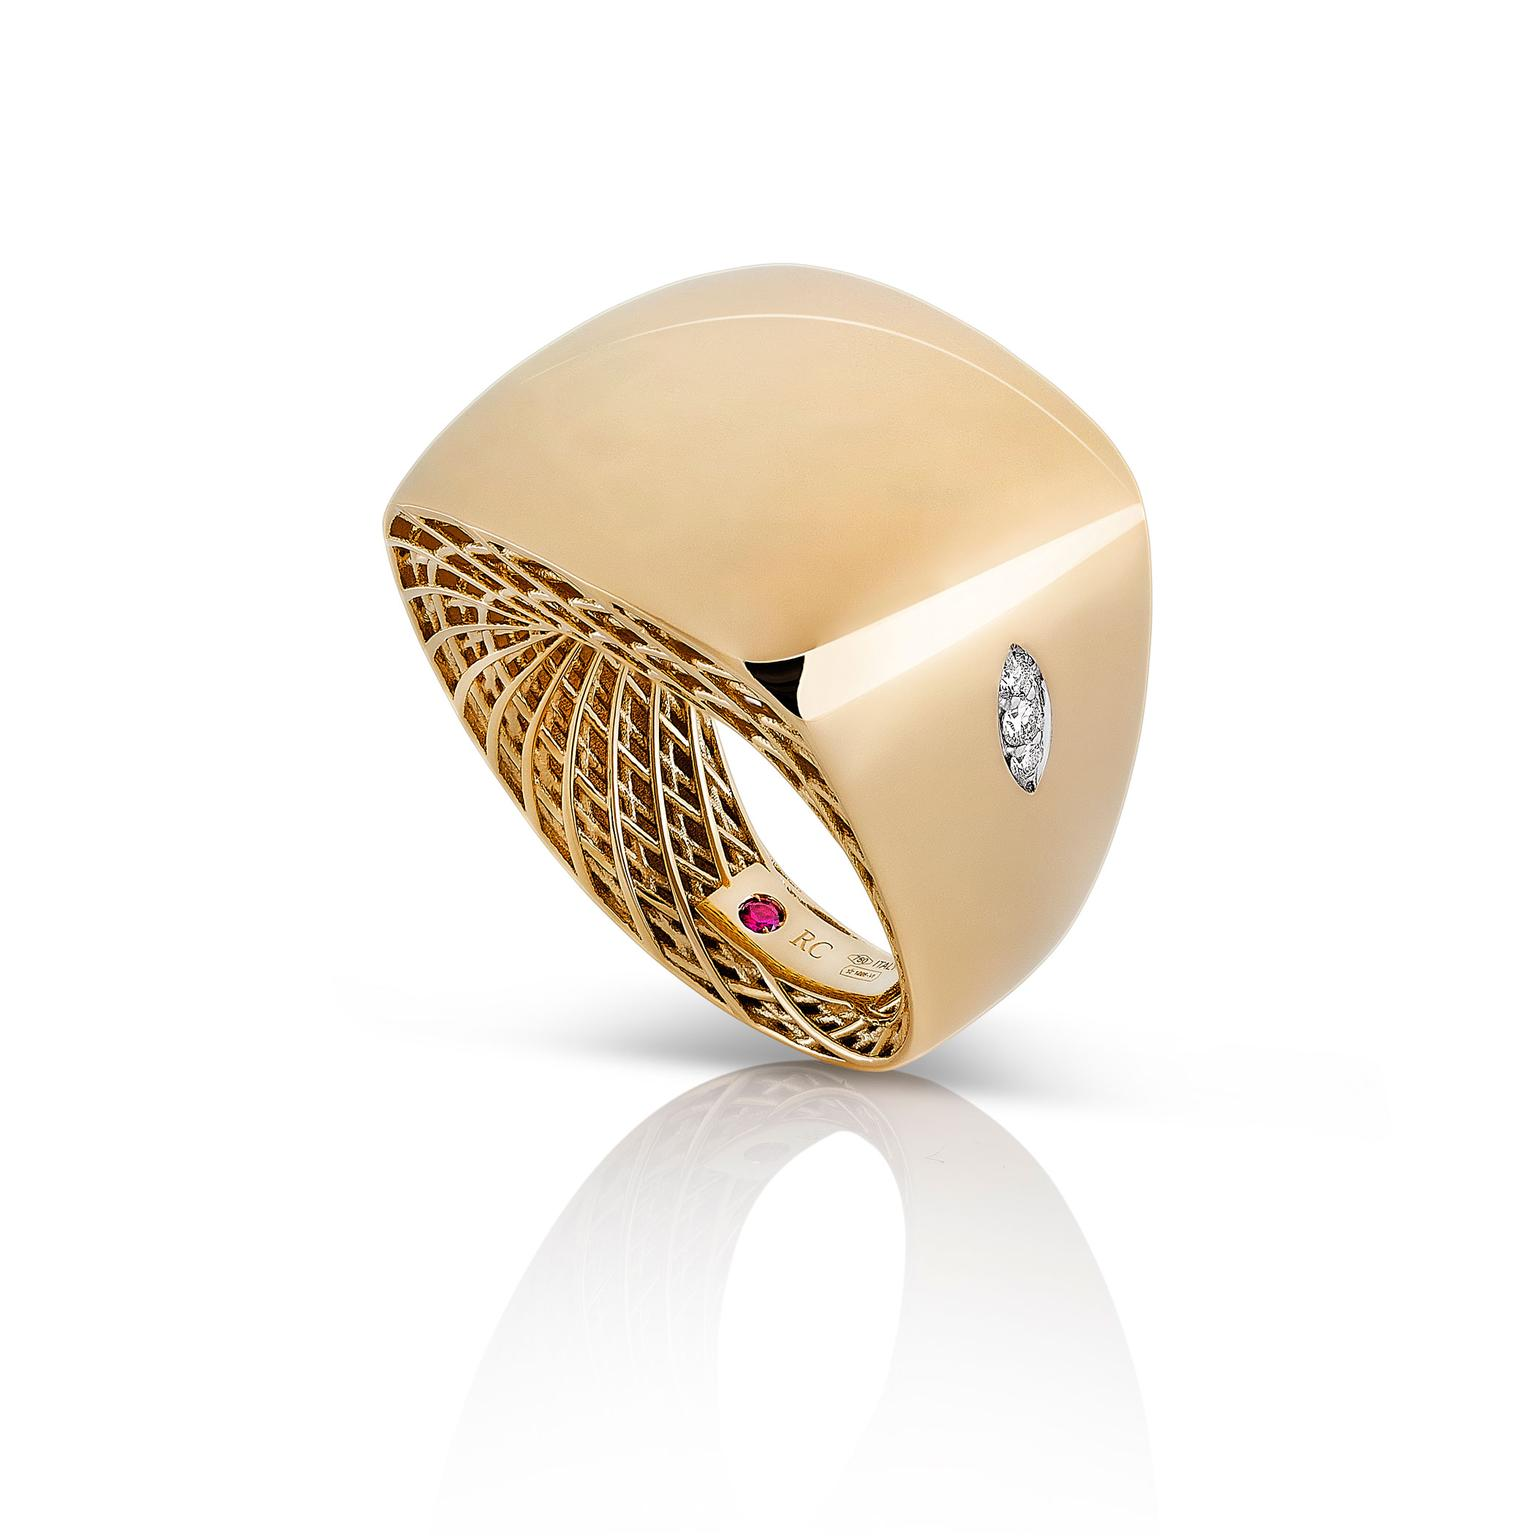 Landmark jewels Roberto Coin yellow gold ring from the Golden Gate collection